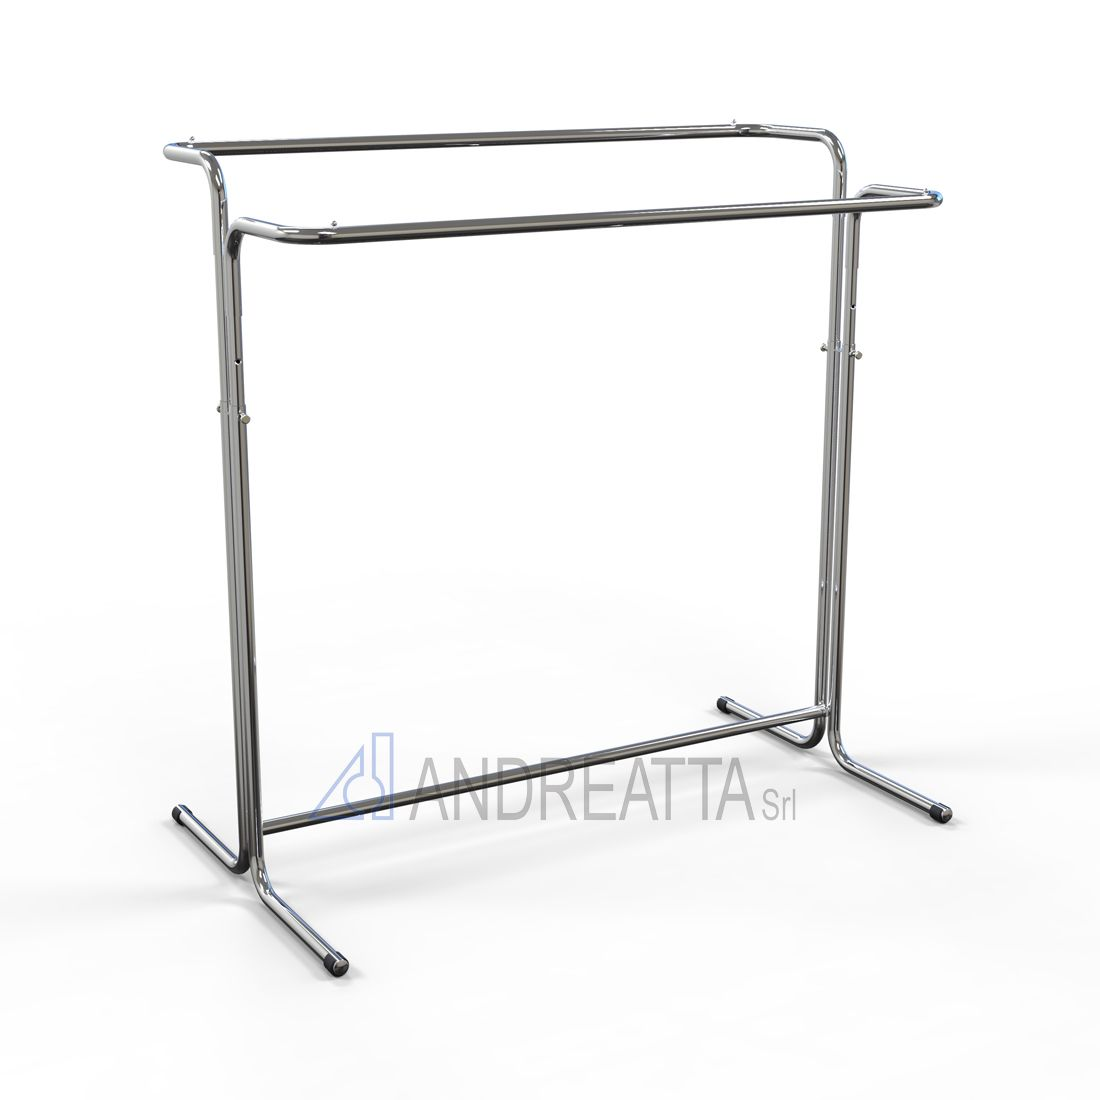 Double Garment rail Adjustable in height